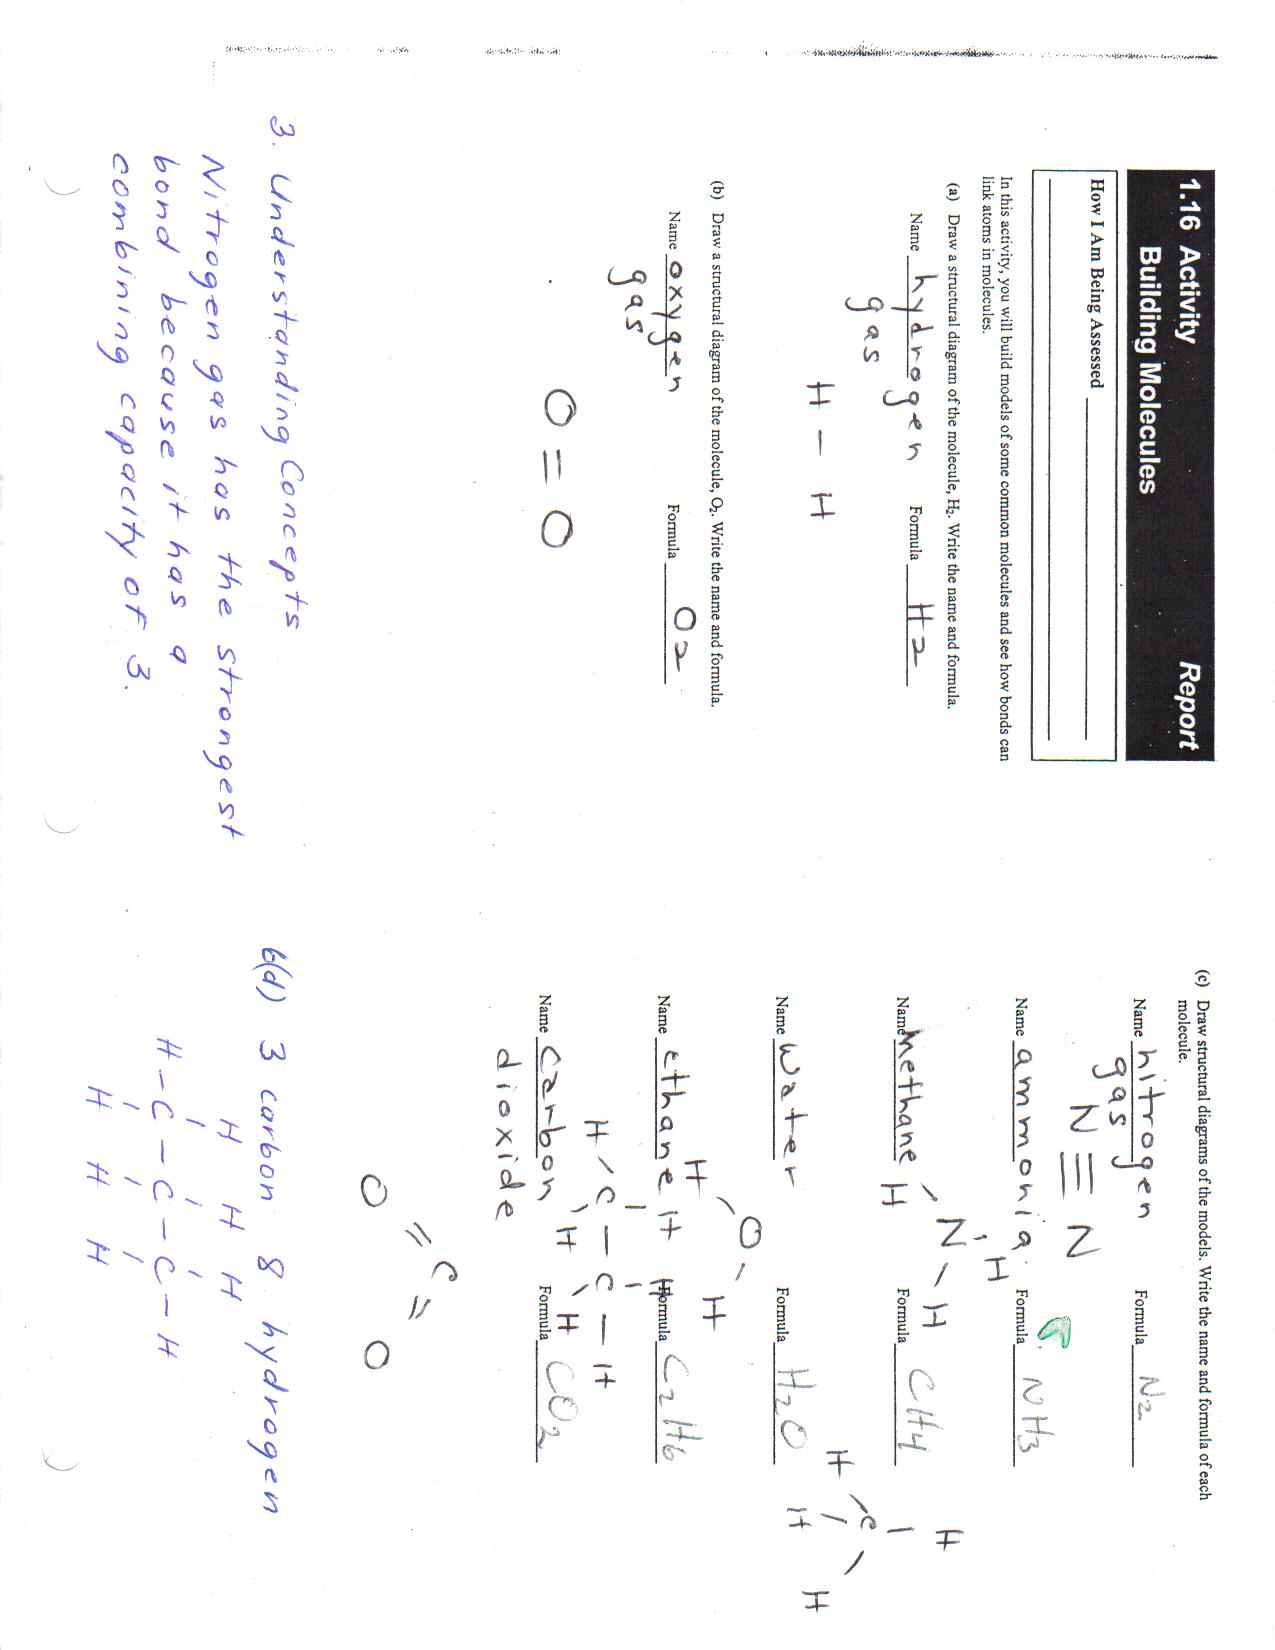 ... Equations Worksheet Answers. on chemistry unit 6 worksheet 2 answers